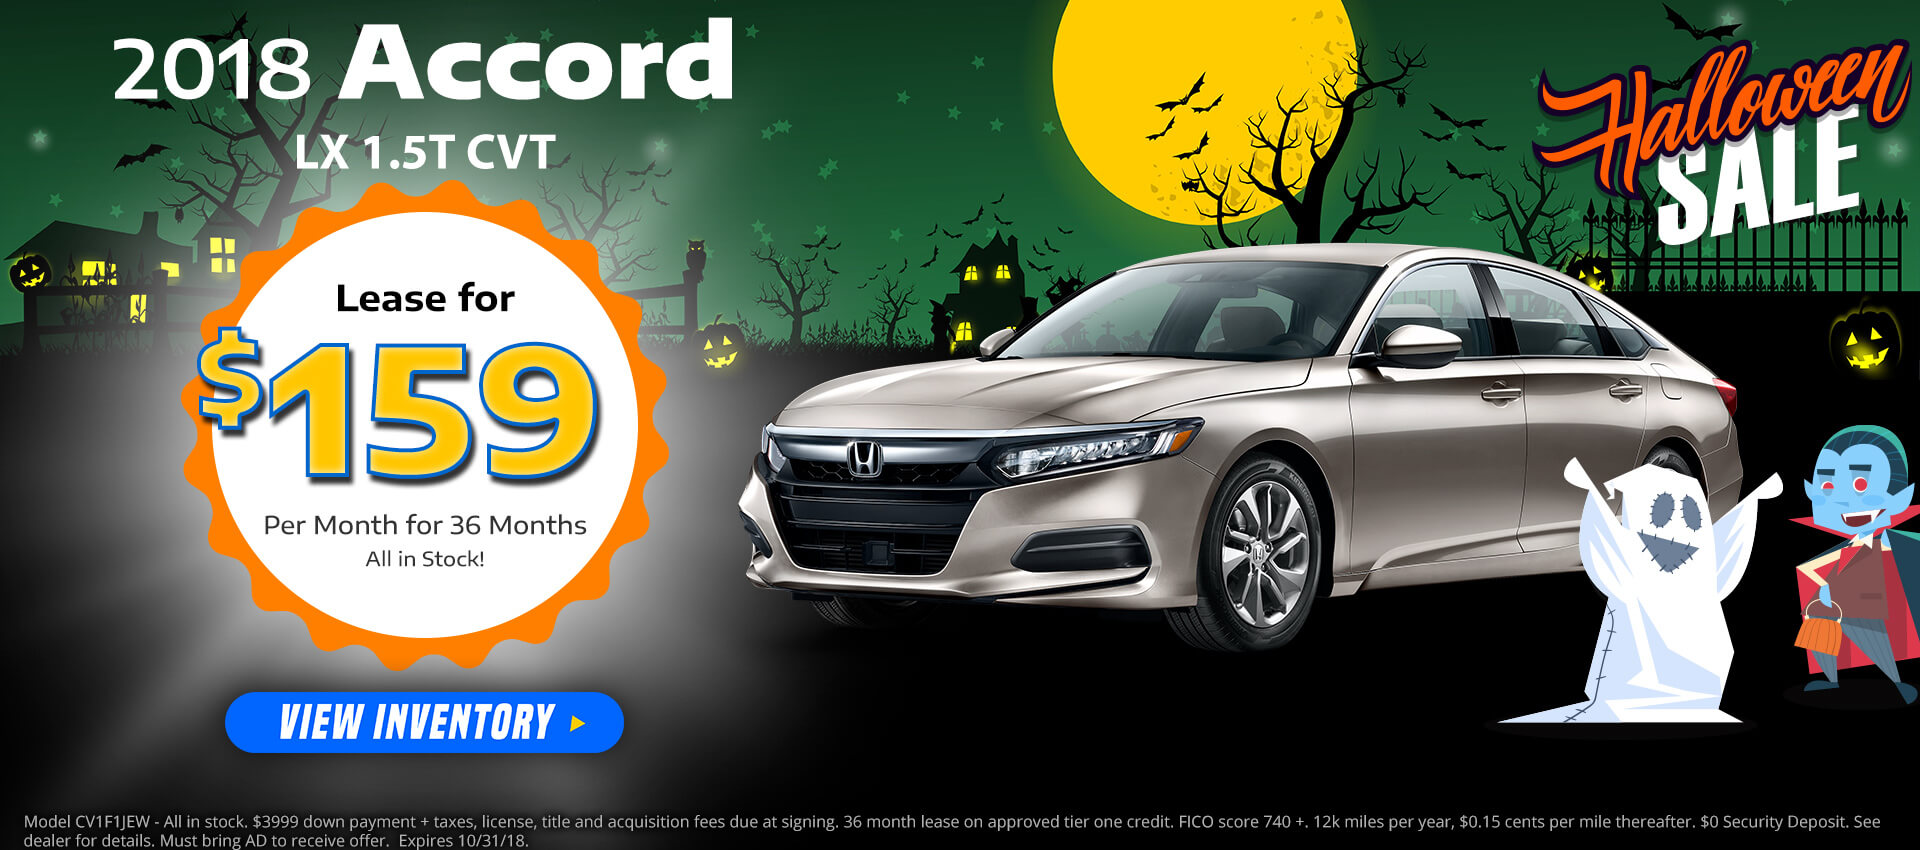 Honda Accord $159 Lease